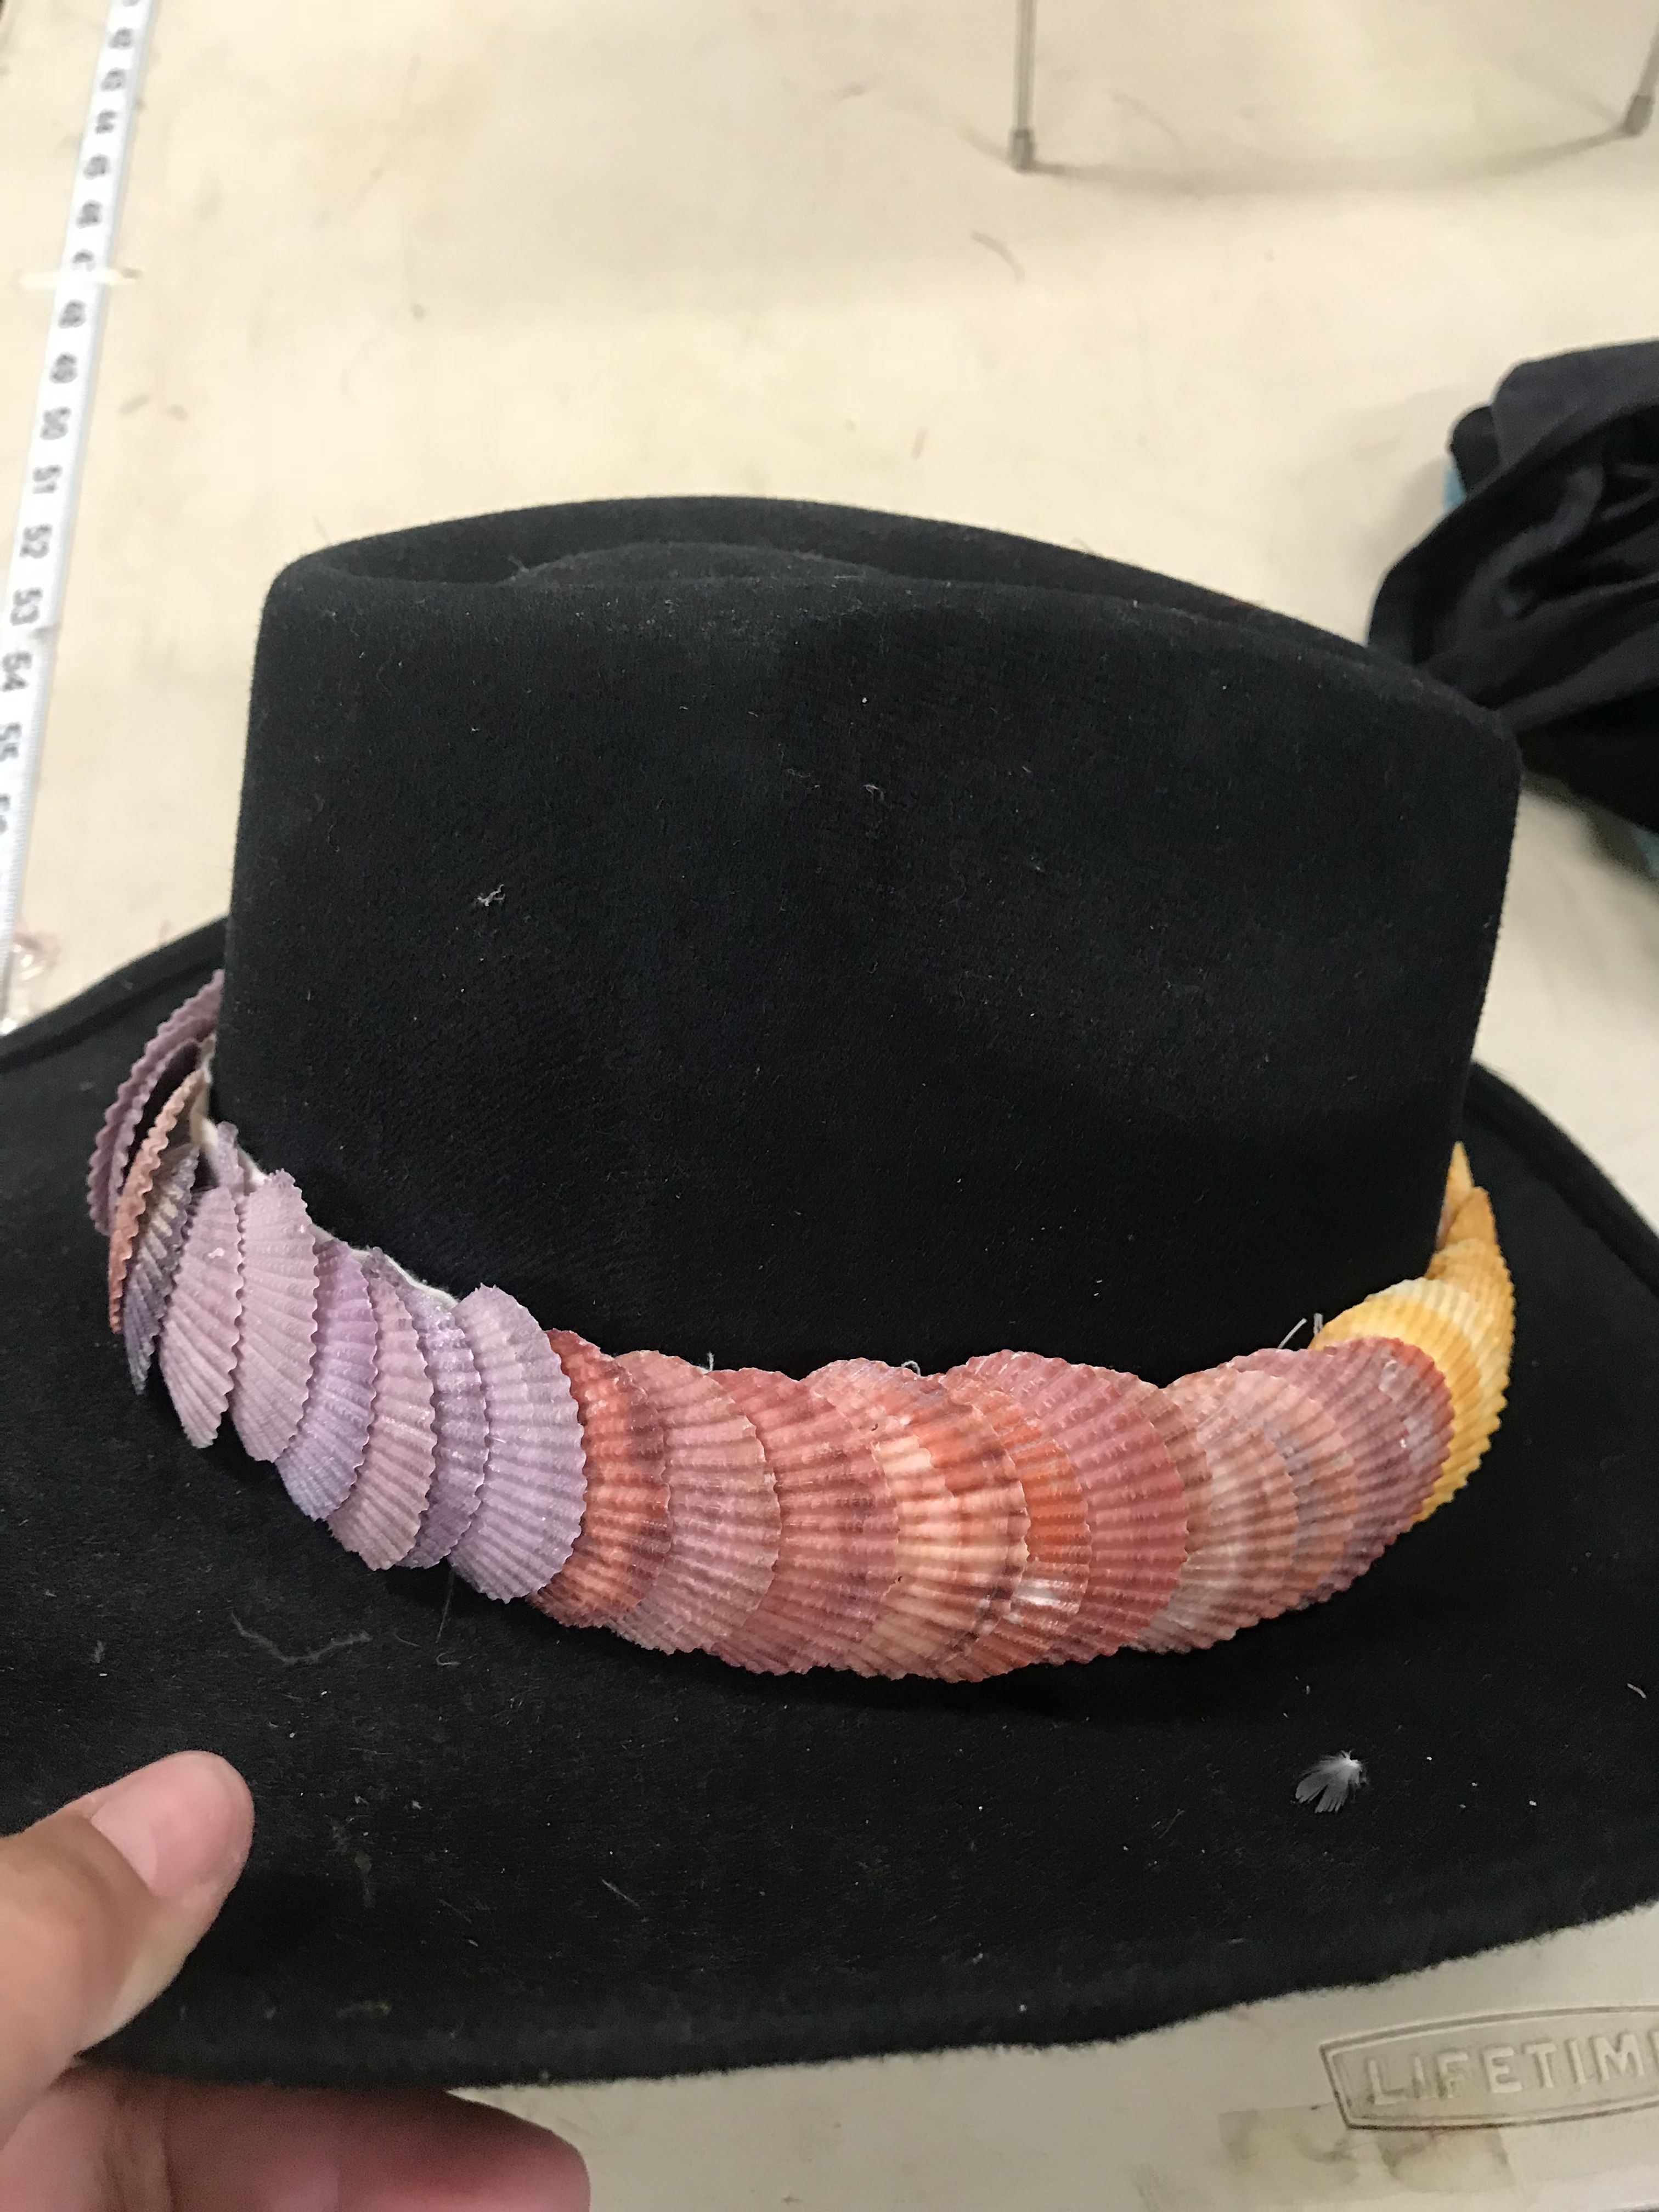 Shell Hat Band Simple Lei To Make Its Very Heavy Which Is Perfect For Windy Places On Maui To Keep Your Papale On Hat Band Hat Bands Lei Ideas